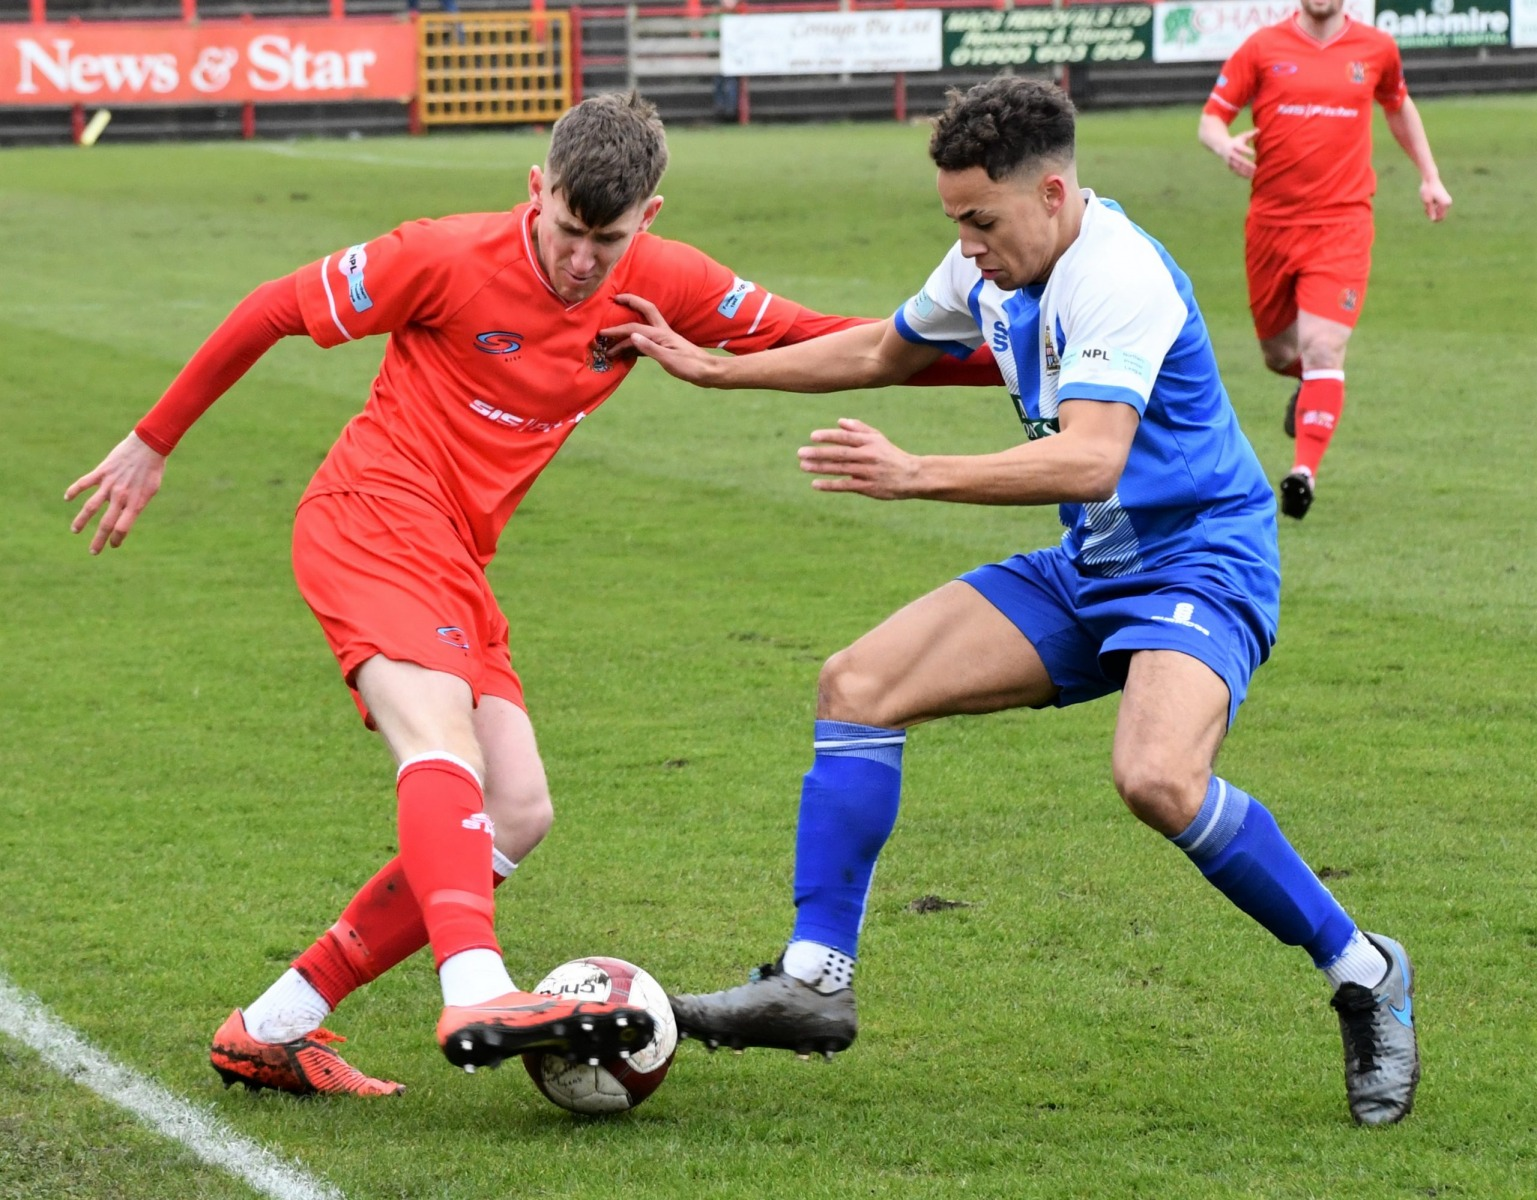 Workington-Reds-v-Clitheroe-FC-Ben-Challis-1-scaled